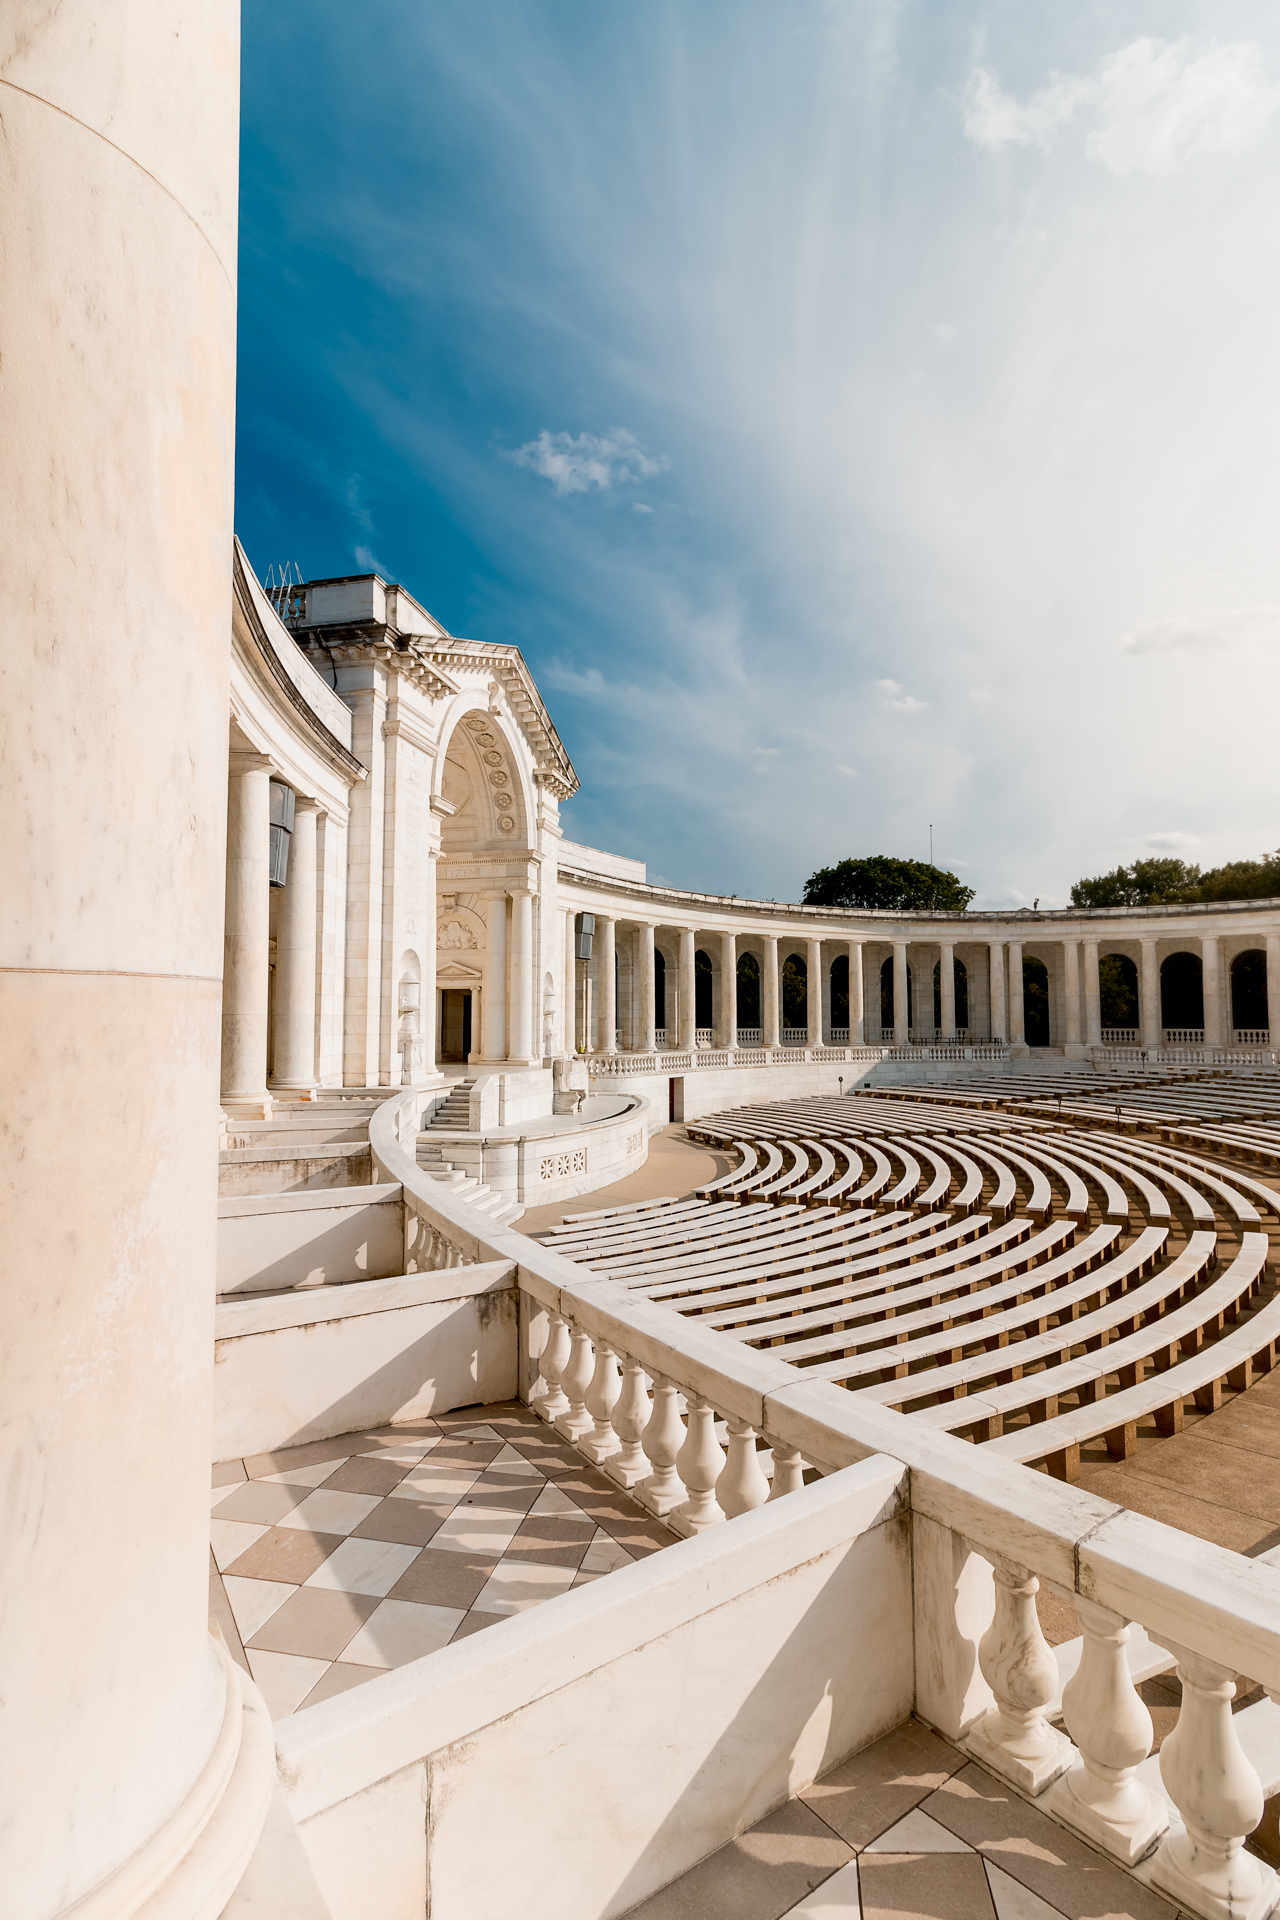 Memorial Amphitheater – Arlington cemetery's amphitheater basking in the sunlight{&amp;nbsp;}(Image: Zack Lewkowicz)<p></p>